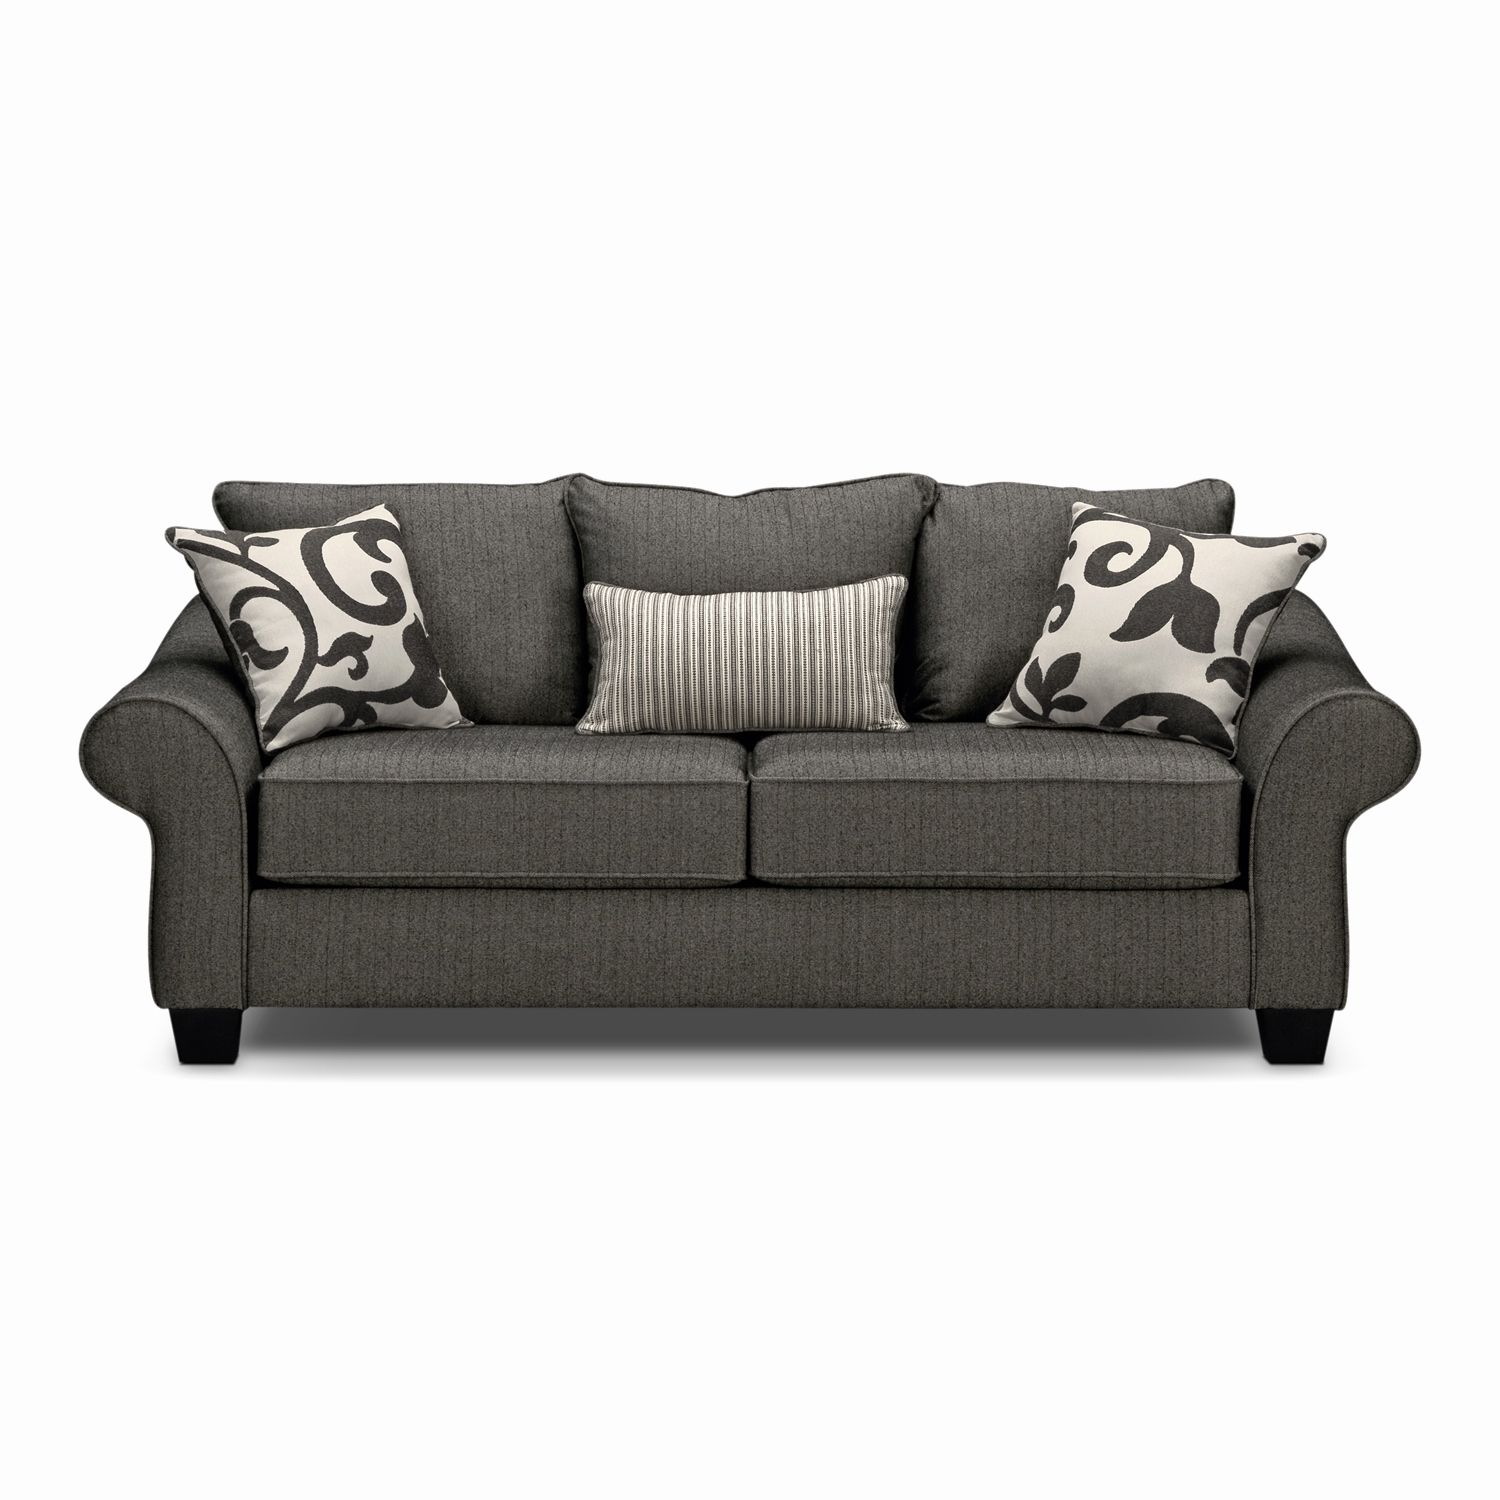 New Convertible Sofa Sleeper Photograpy Awesome Nice Gray Simple Small Living